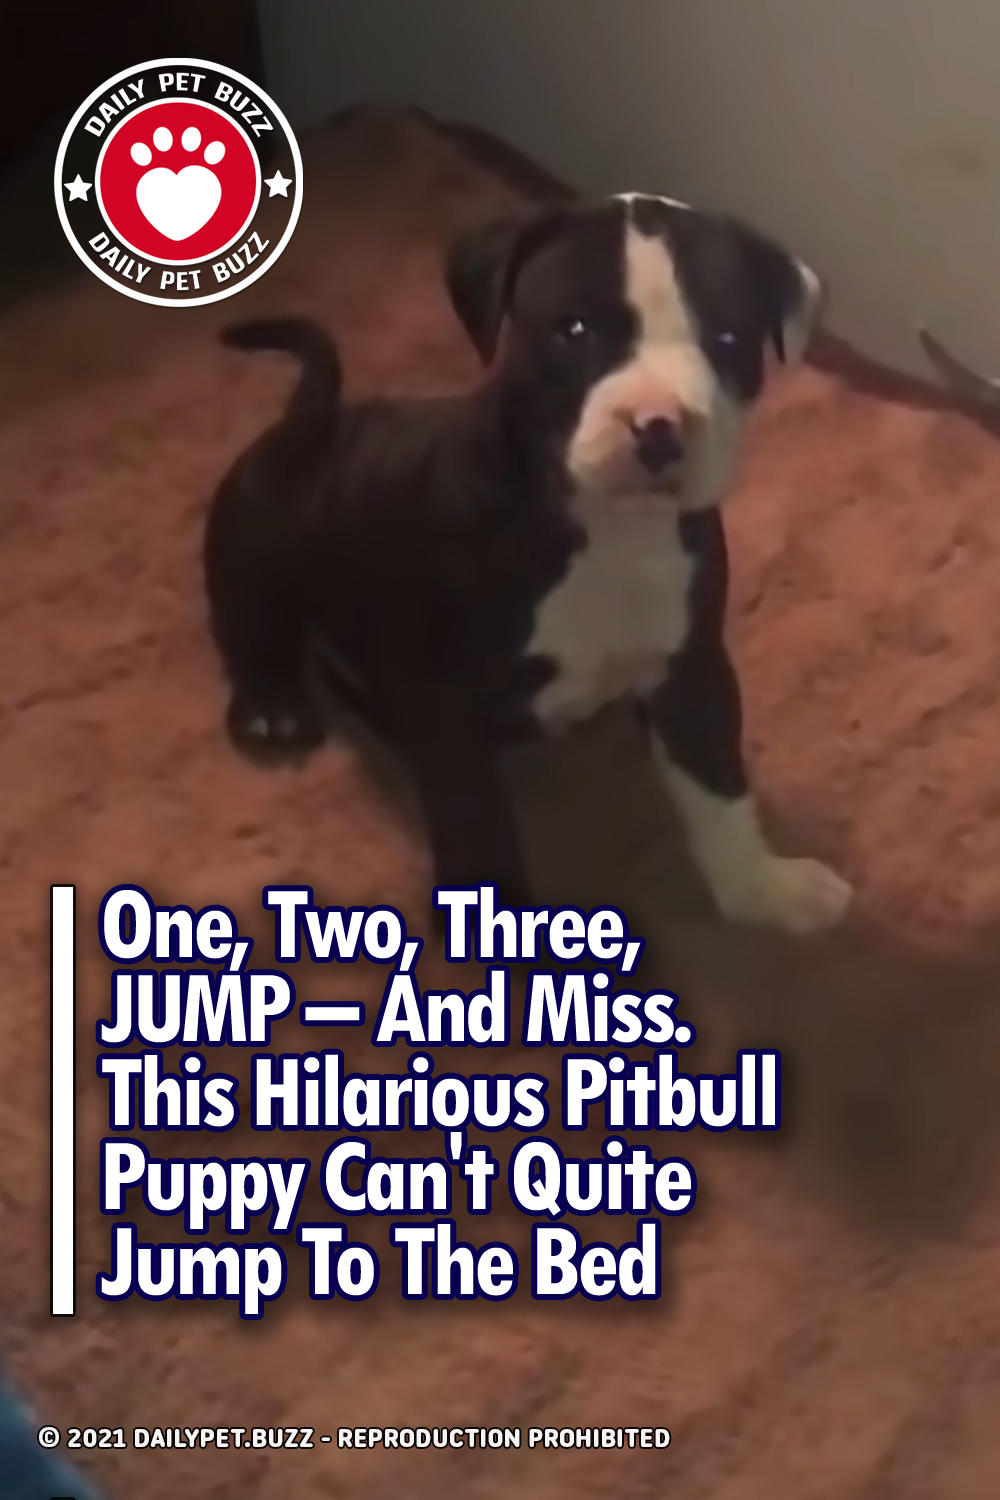 One, Two, Three, JUMP – And Miss. This Hilarious Pitbull Puppy Can\'t Quite Jump To The Bed